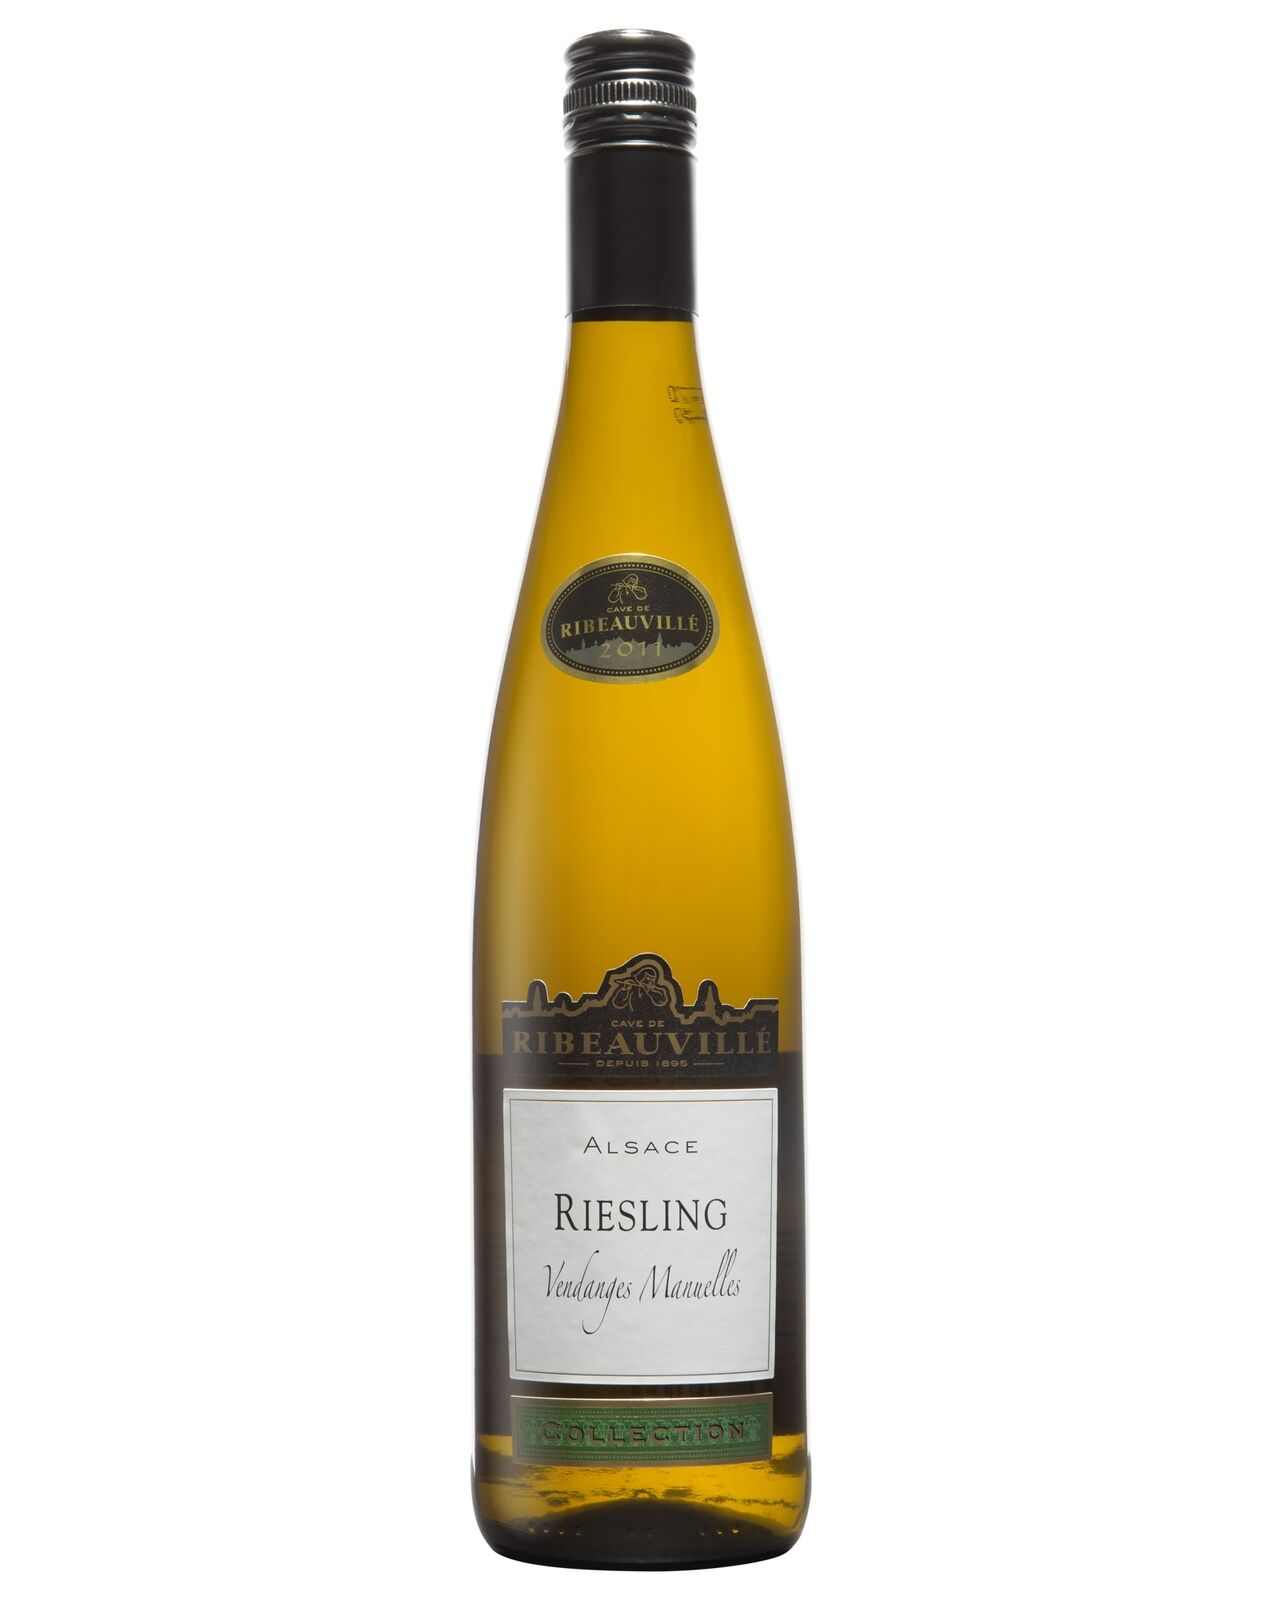 Cave De Ribeauville Riesling 2011 case of 1 Dry White Wine 750mL Alsace